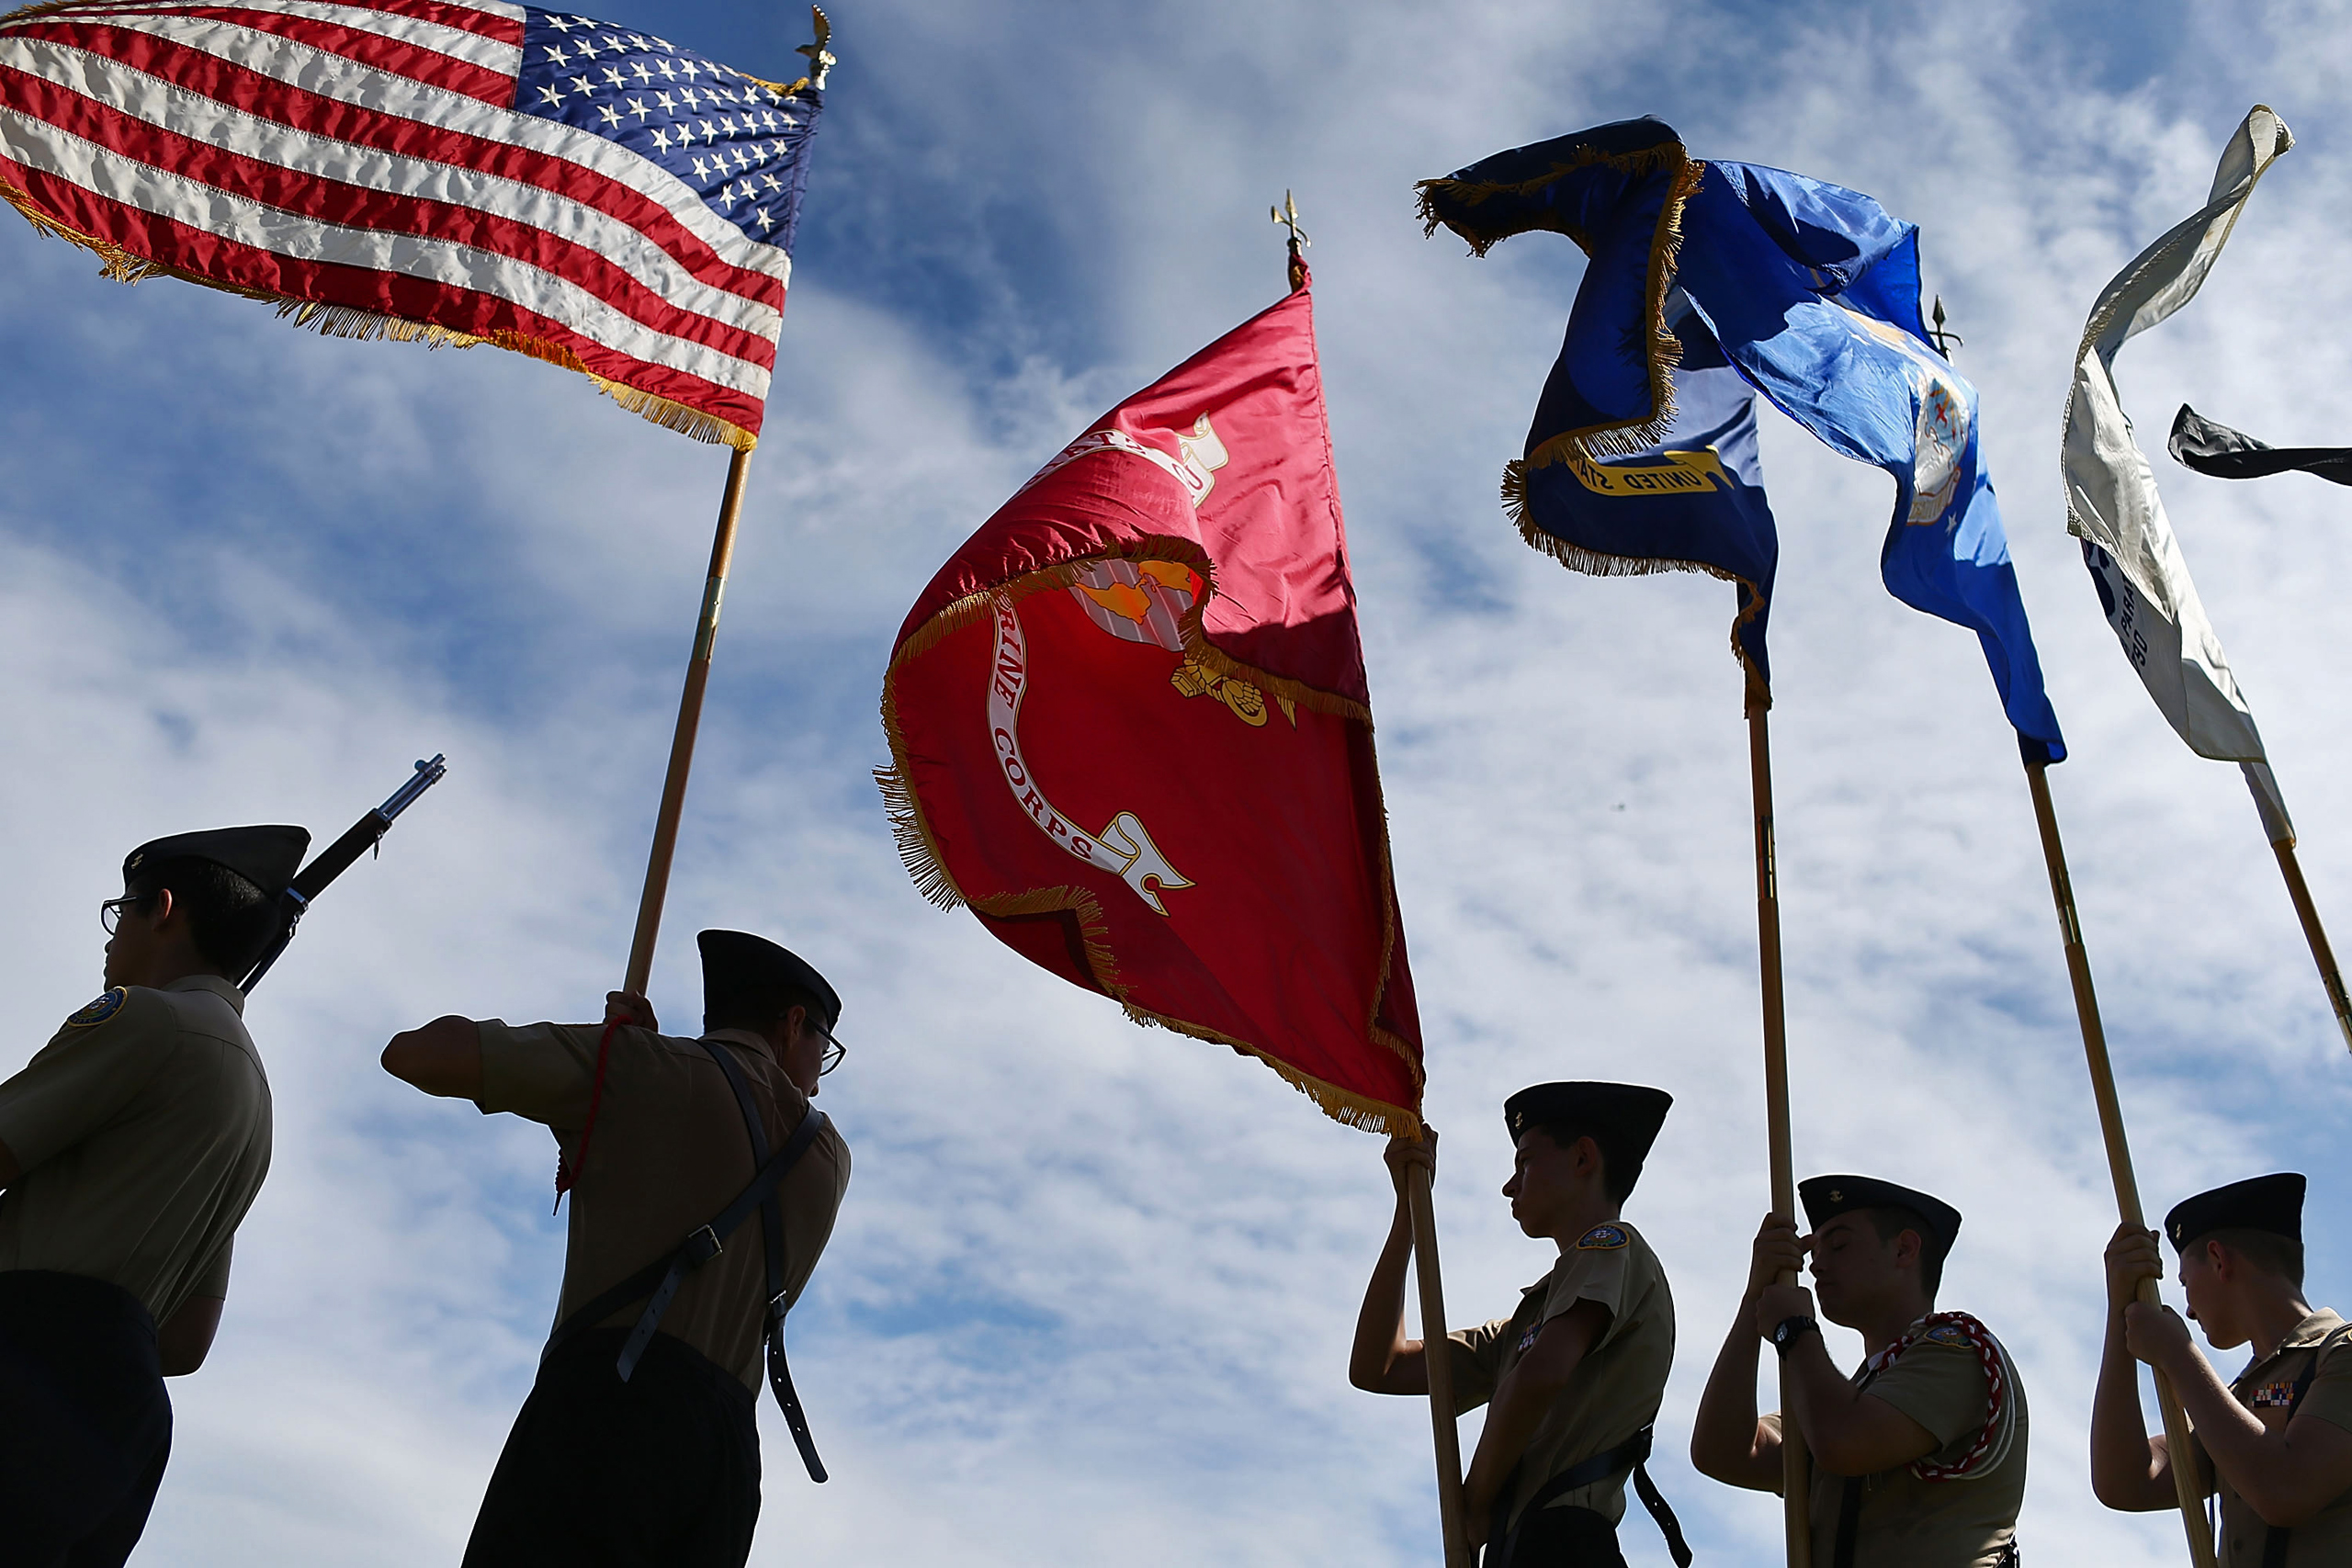 Members of the G. Holmes Braddock Senior High School NJROTC color guard carry their flags during a Veterans day ceremony in Miami Beach, Florida, on Nov. 11, 2015.